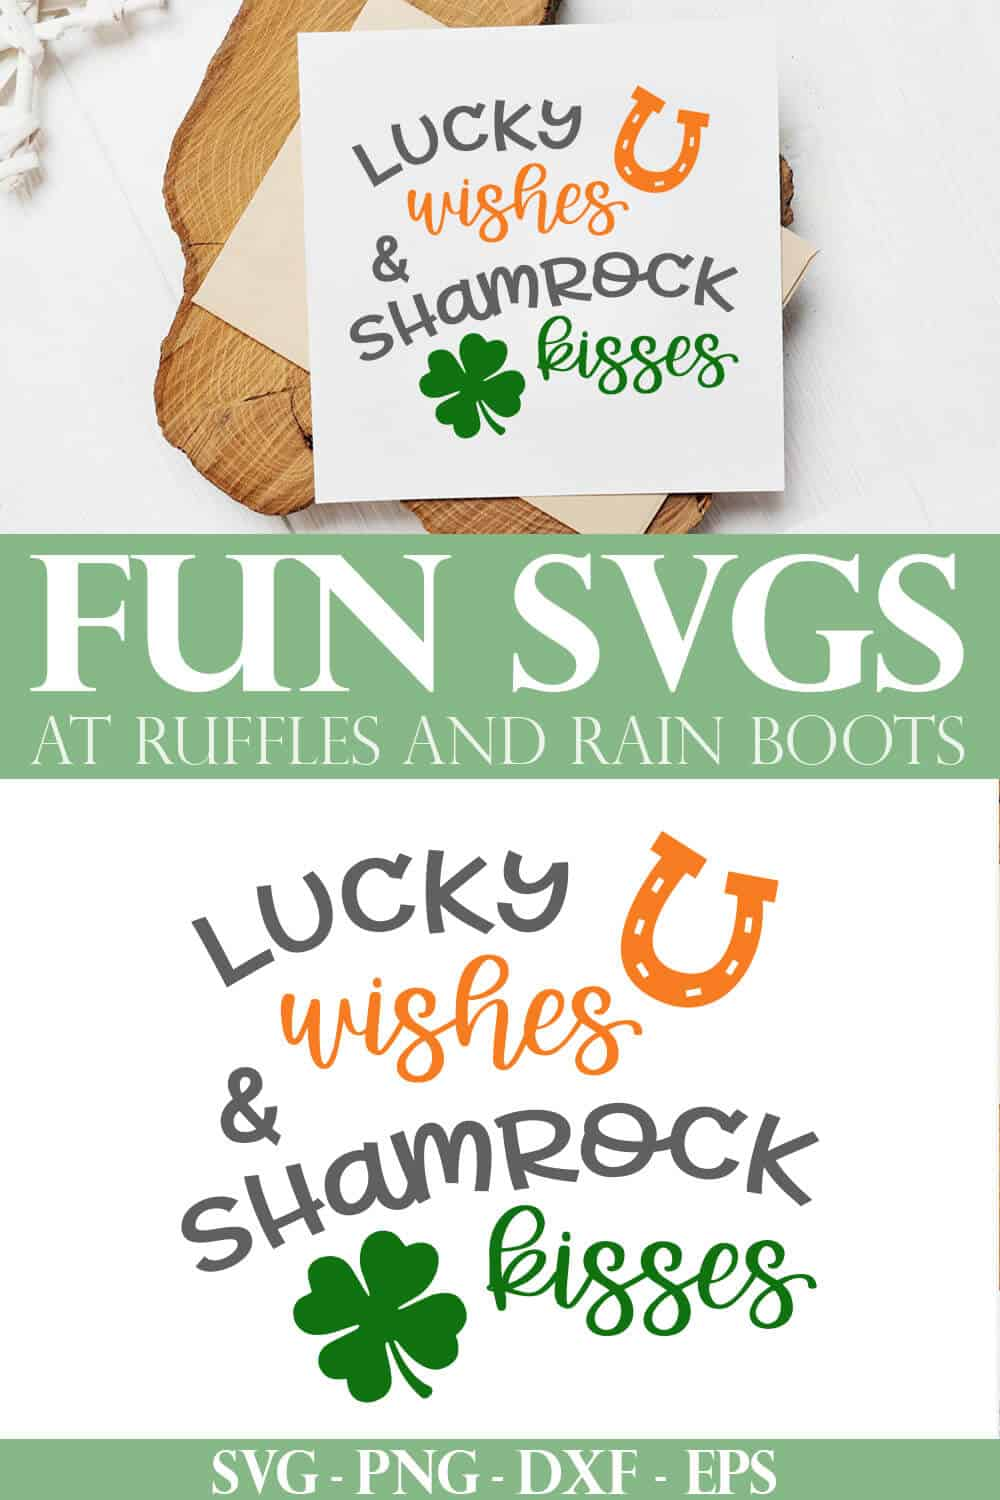 collage of lucky wishes and shamrock kisses svg on white card stock on wood plank